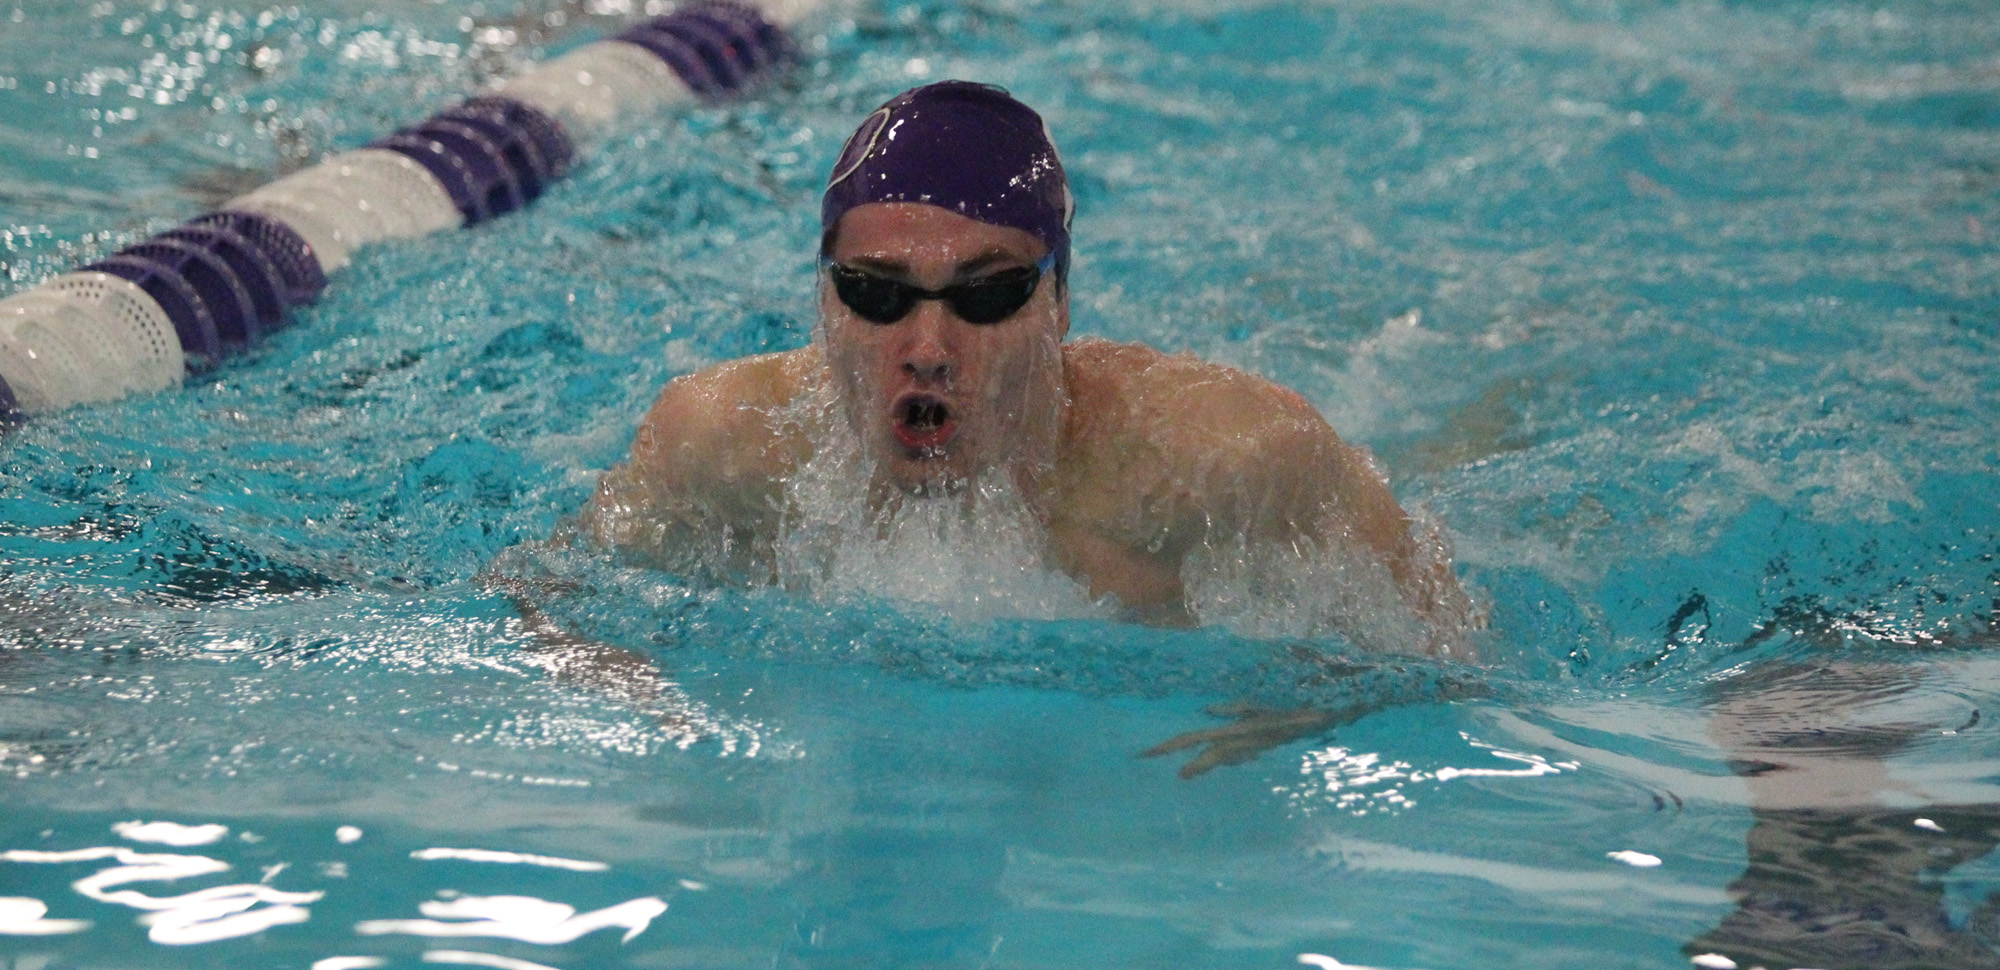 Sophomore Jack Donnelly helped a relay team take a win, while also winning an individual event on Saturday at Ramapo.